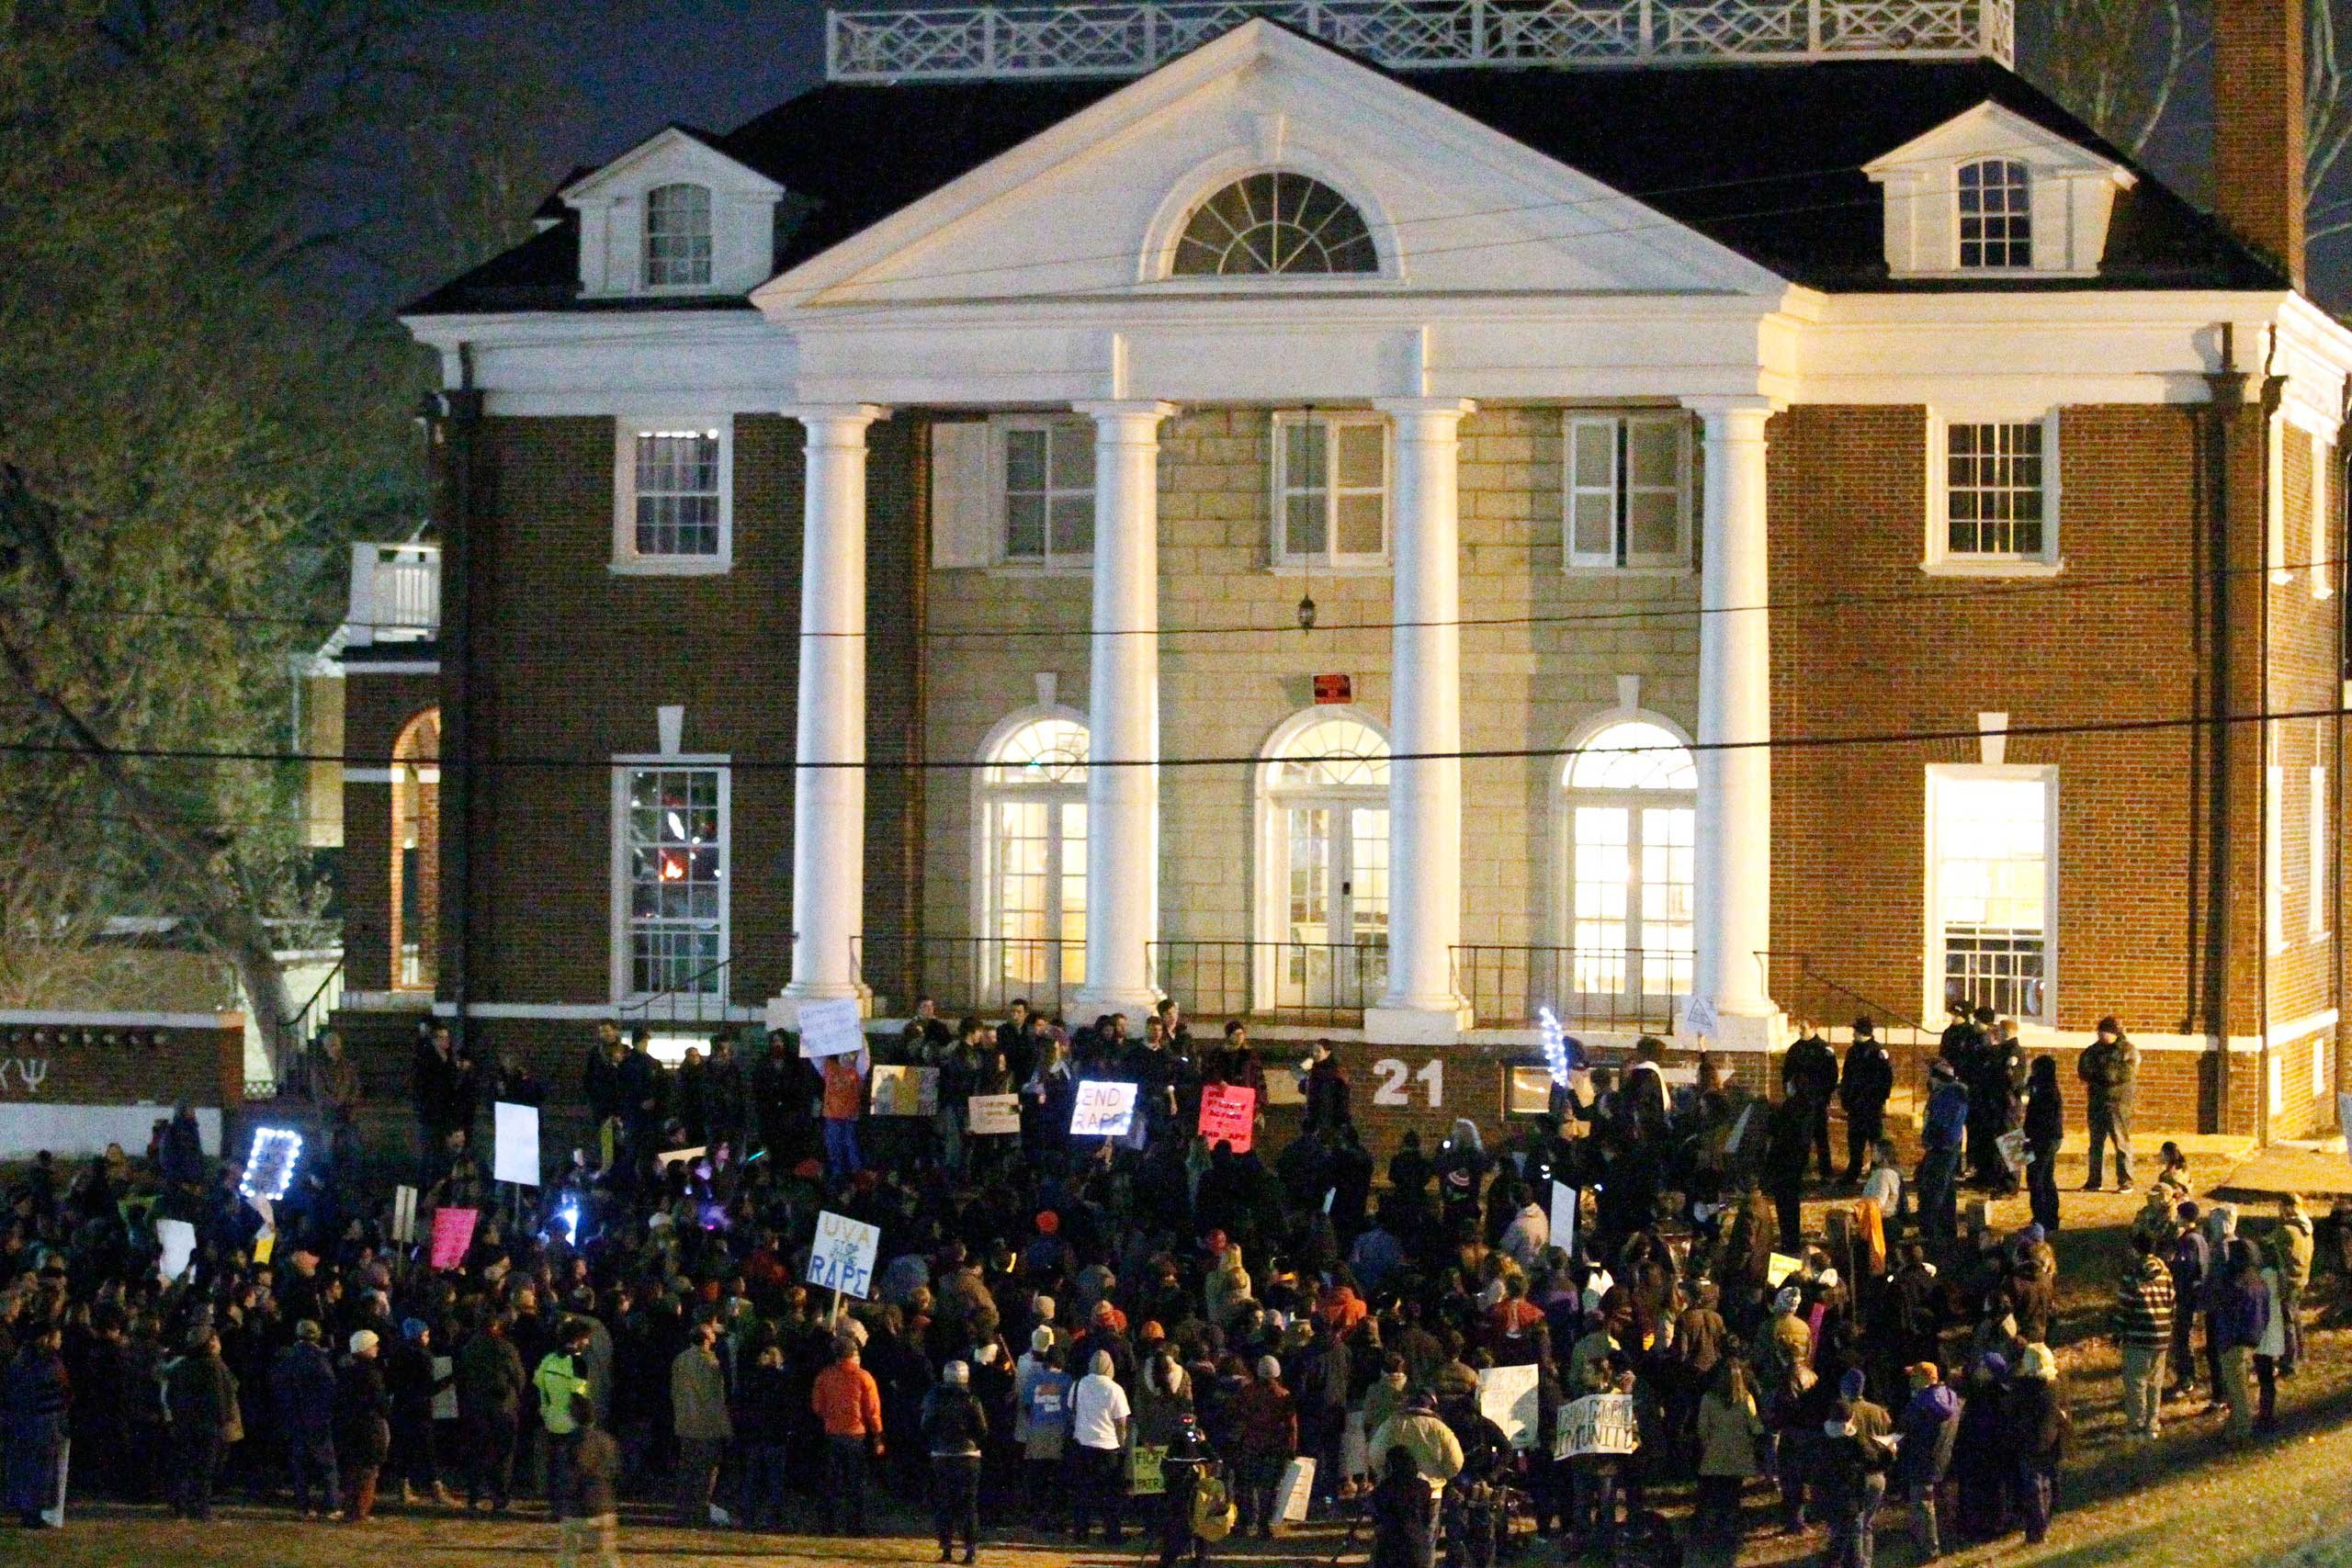 Protestors carry signs and chant slogans in front of the Phi Kappa Psi fraternity house at the University of Virginia, Nov. 22, 2014, in Charlottesville, Va.